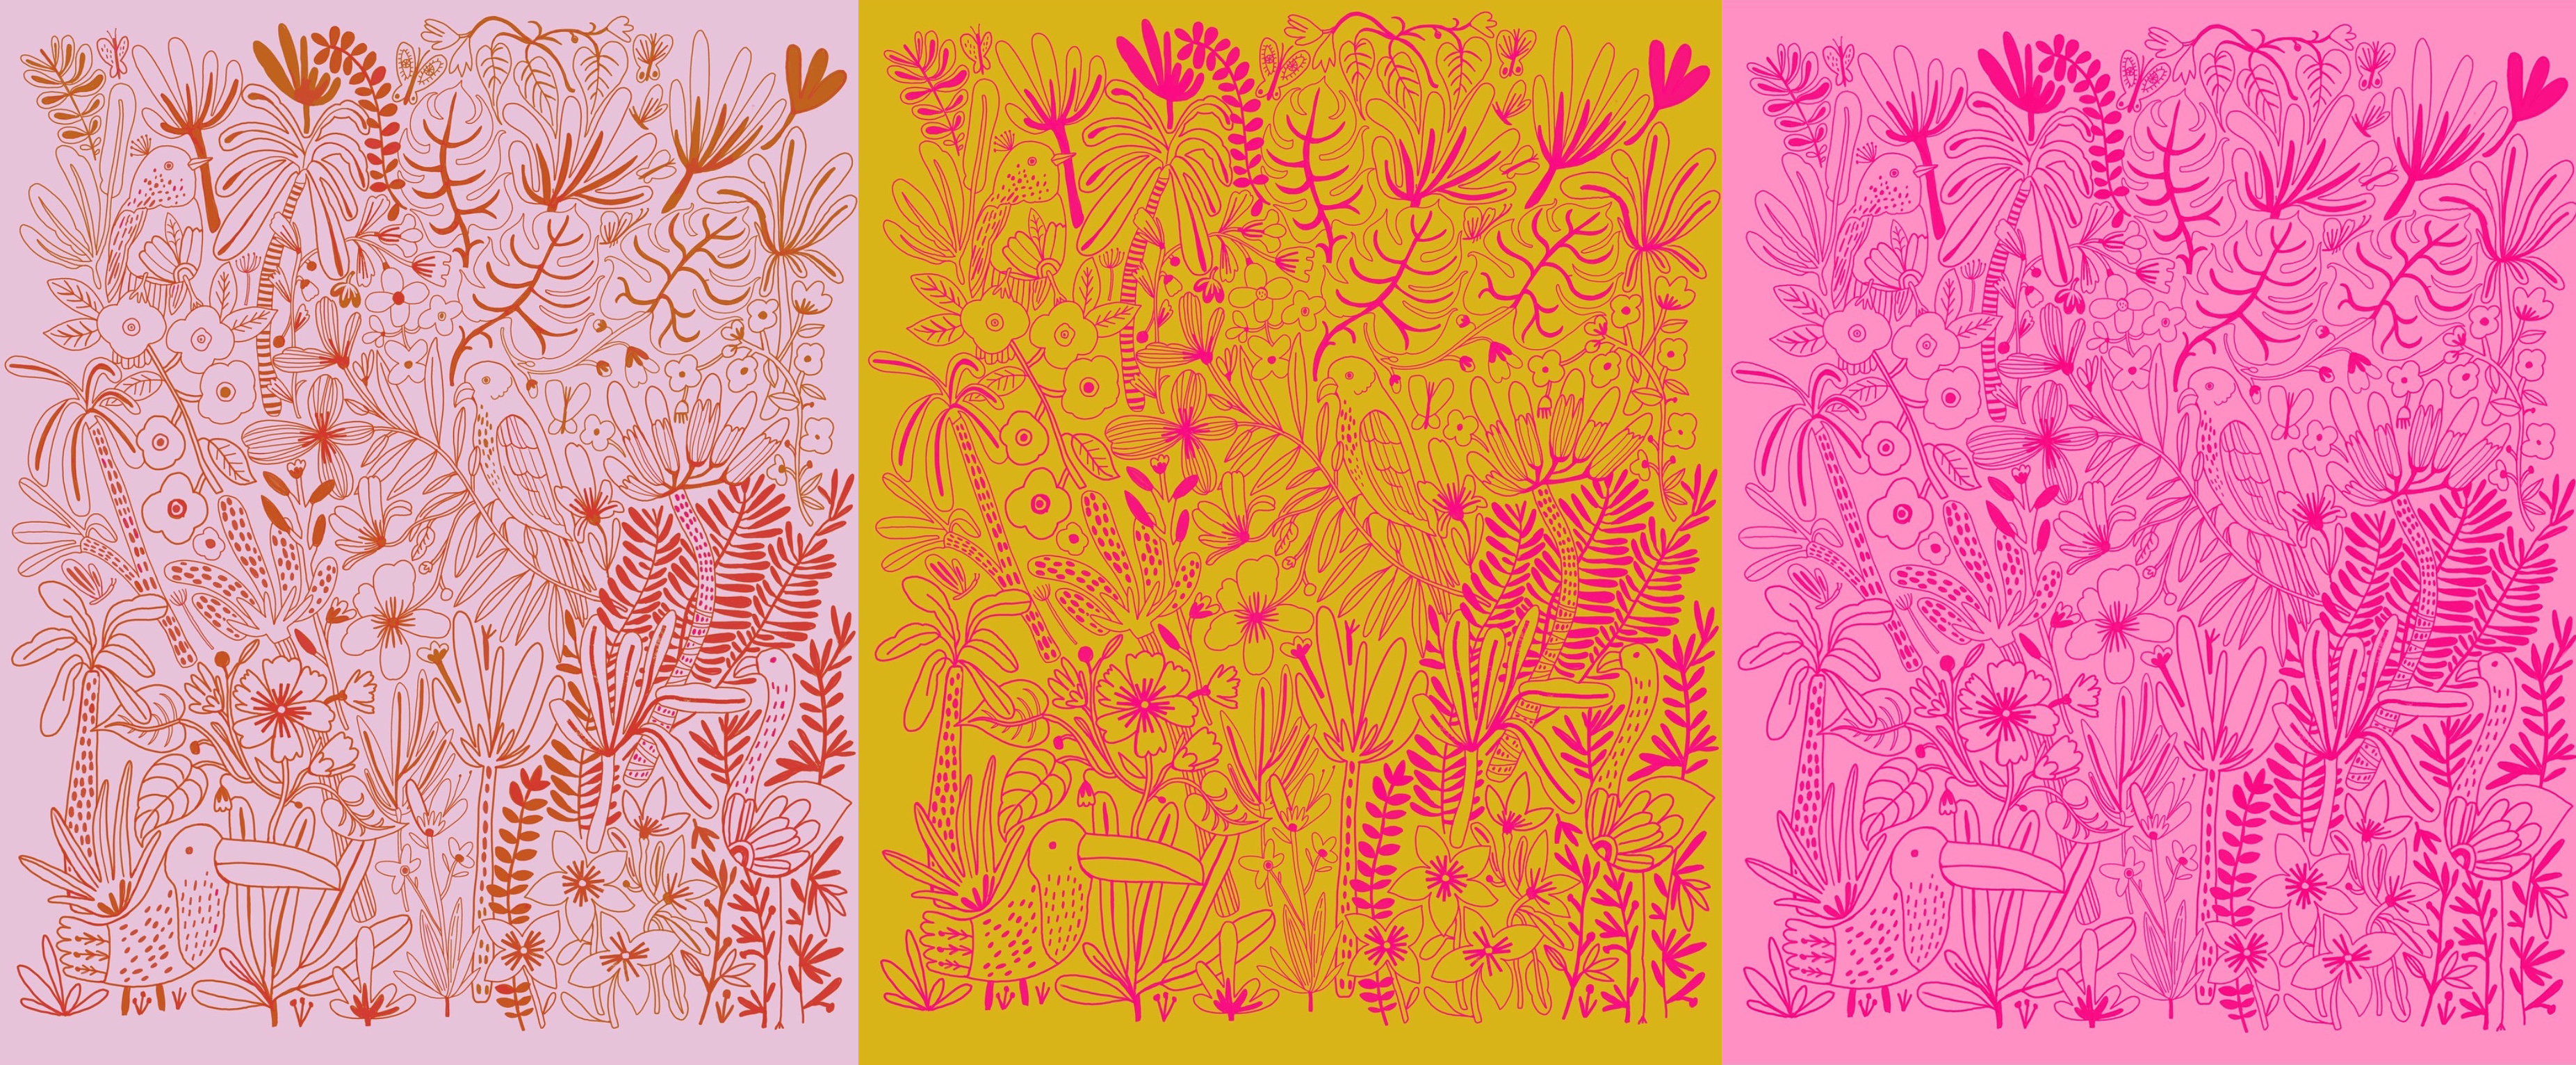 Carolyn Gavins Mockups For An Awesome Tissue Paper By Noissueco To See Our Version Go Here Which Color Do You Like Vote On Her Instagram